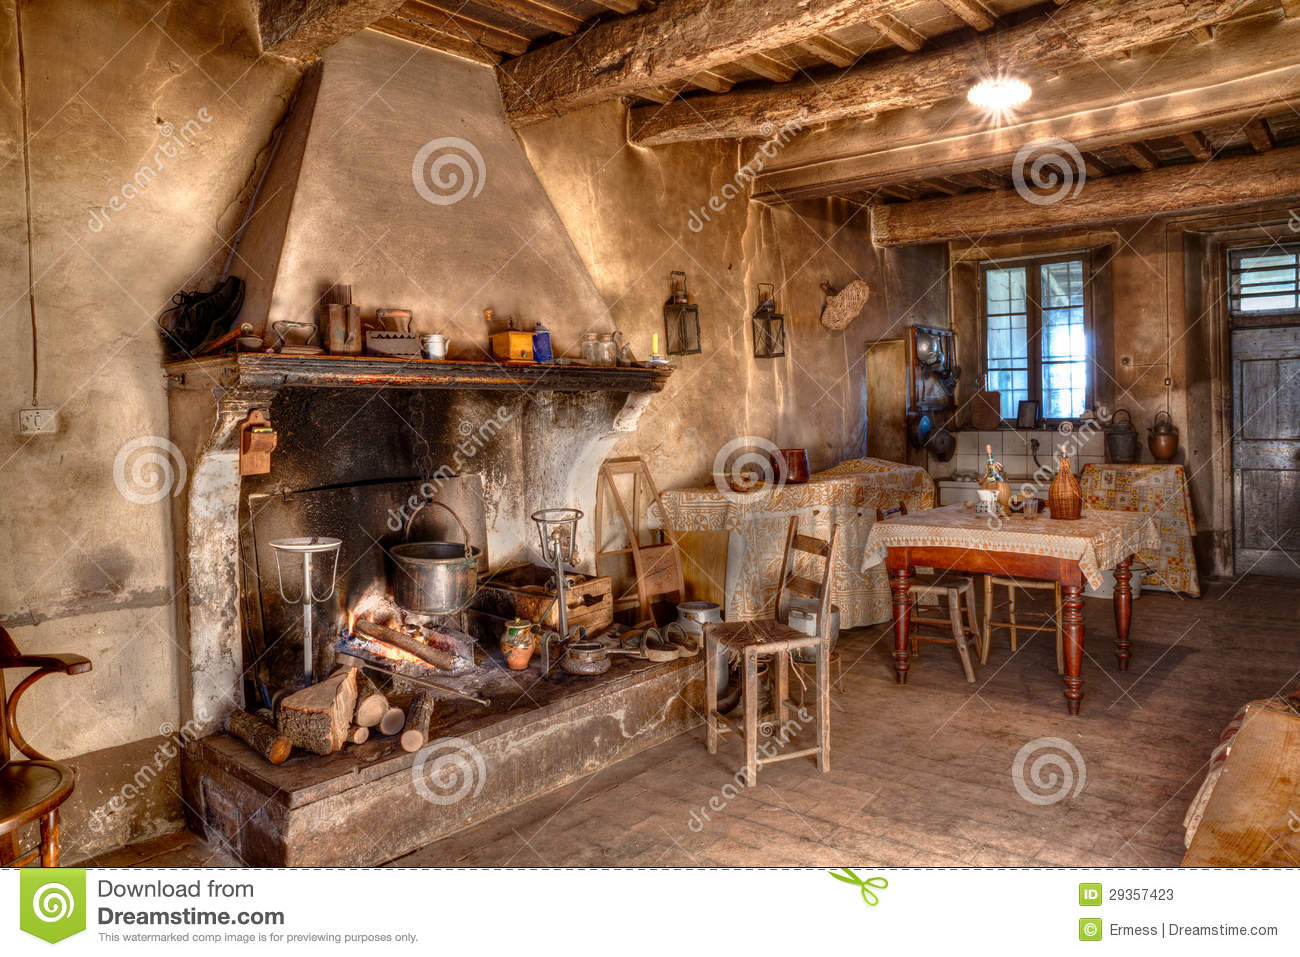 Old times farmhouse stock image. Image of antique ...